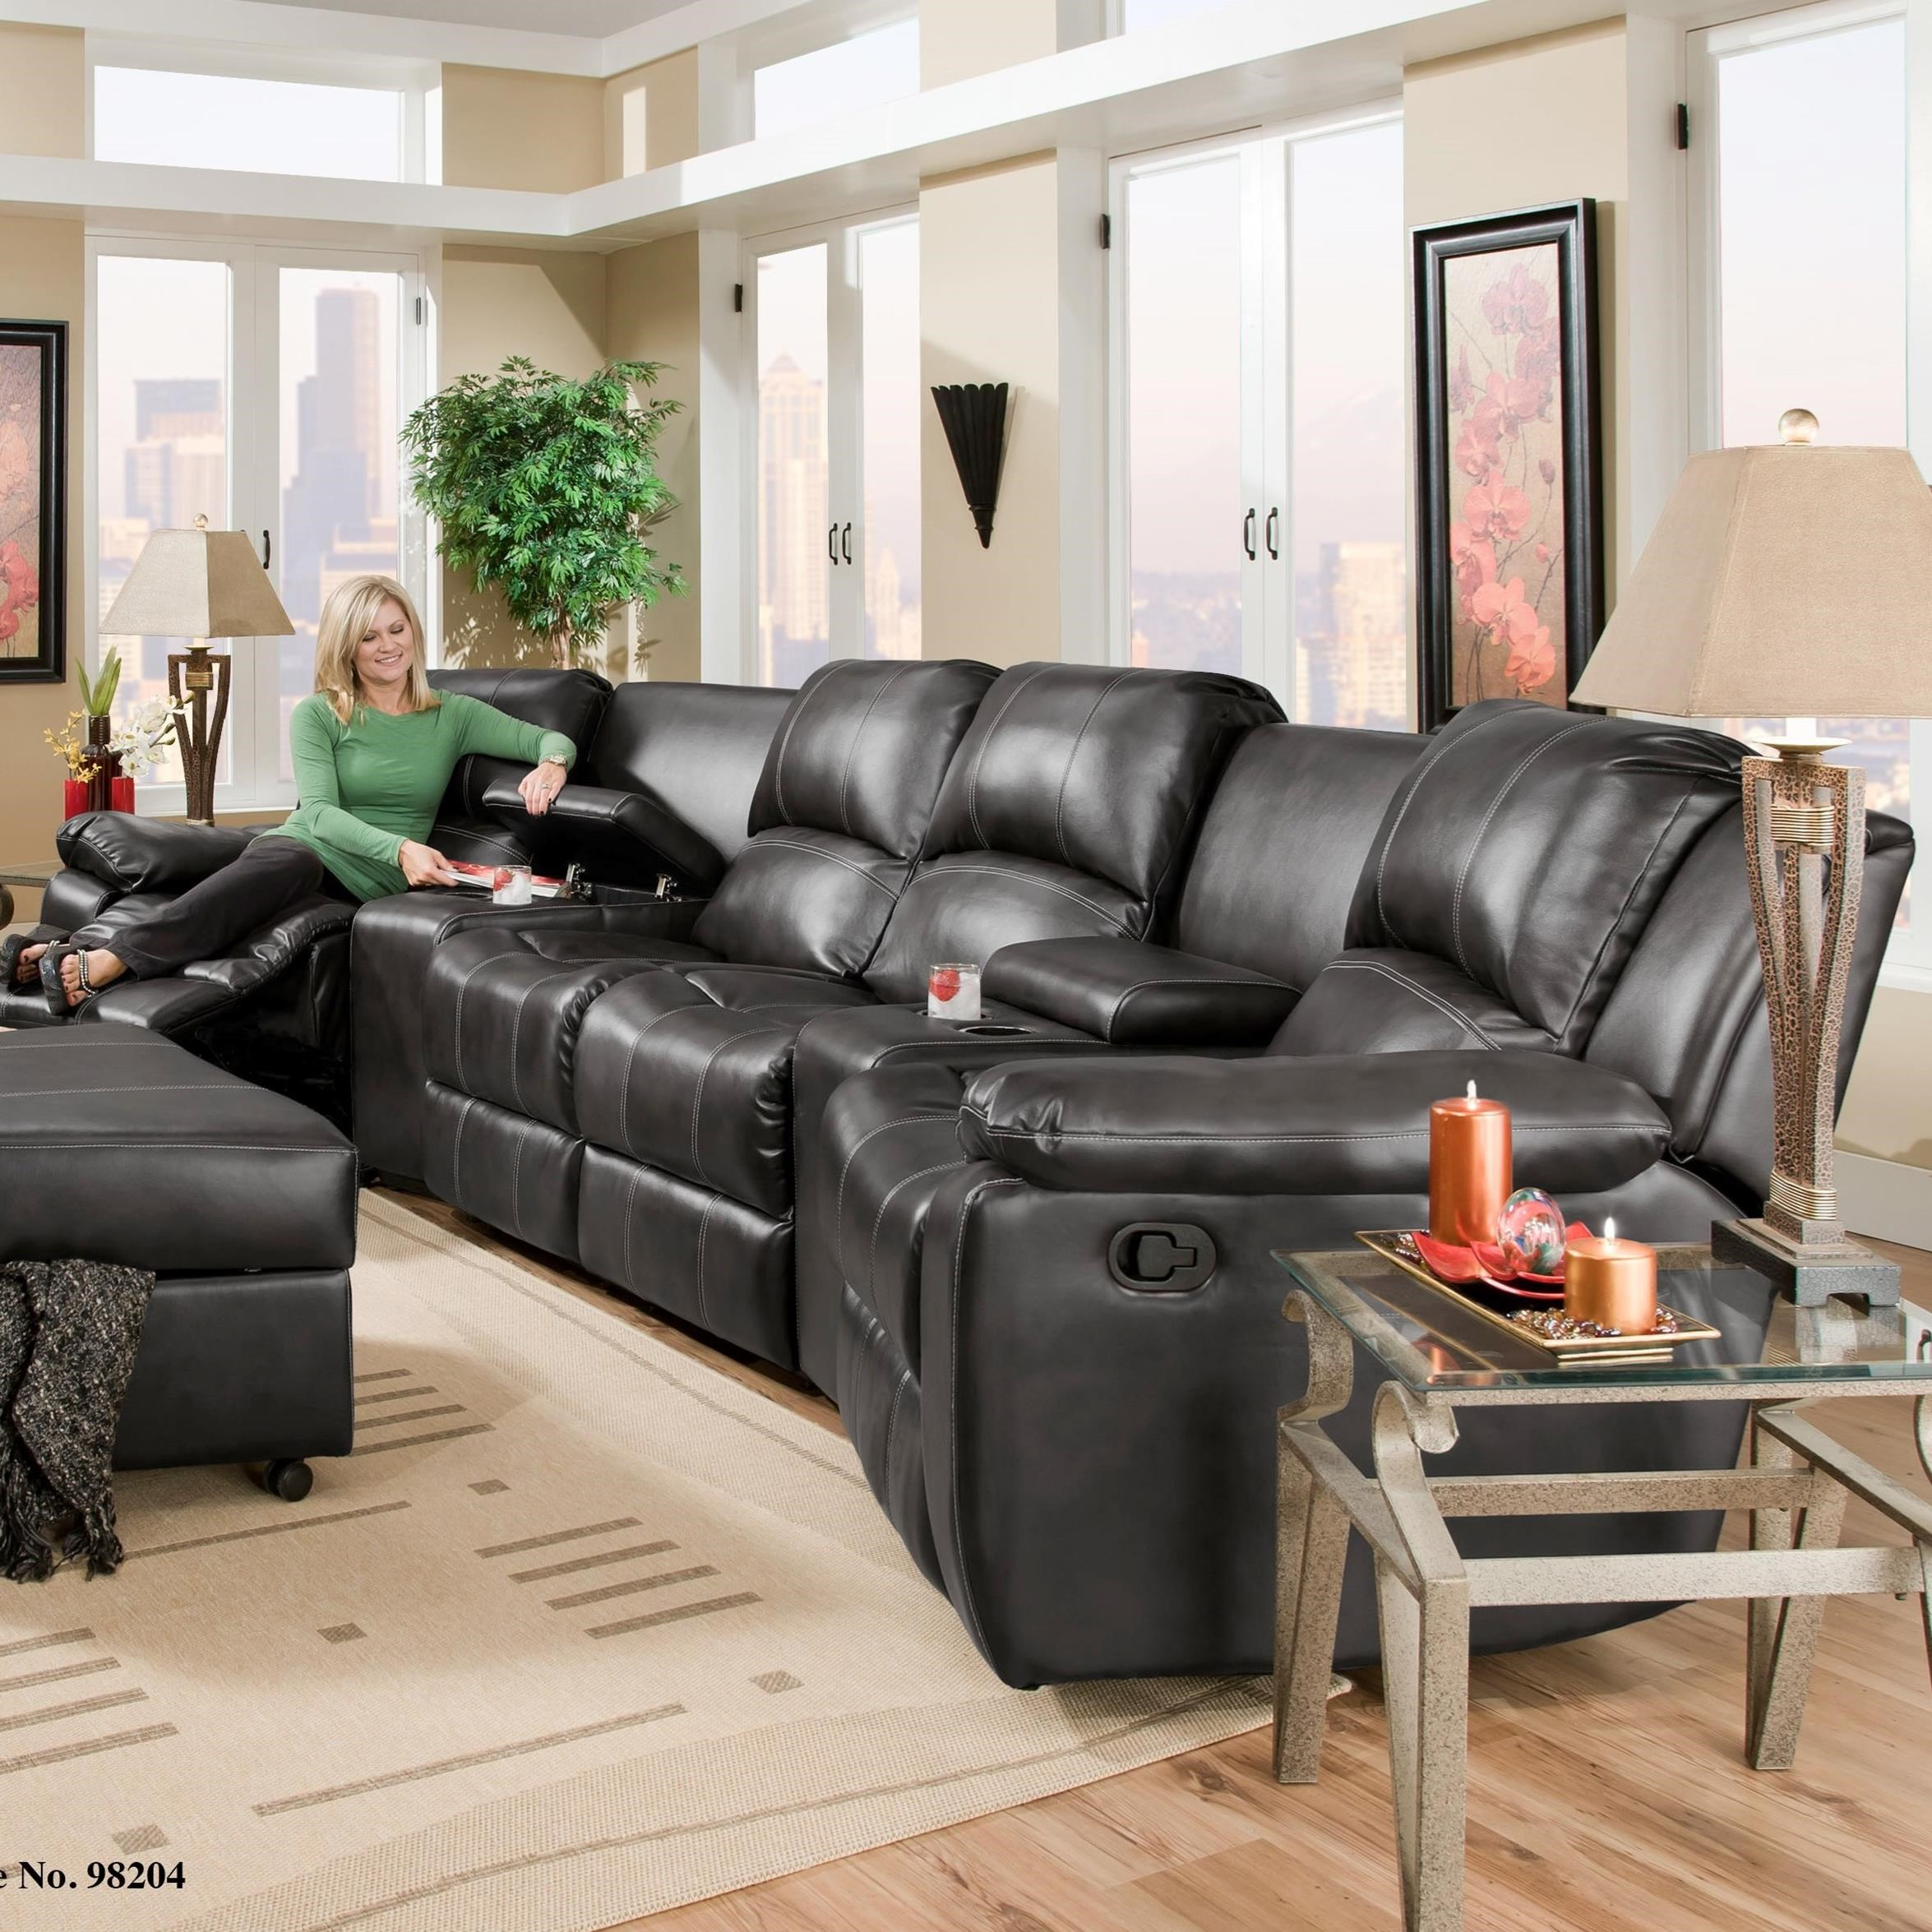 Corinthian Brady Four Seat Reclining Sectional with Consoles - Item Number: 98204-11F+50+02NA+50+11RF